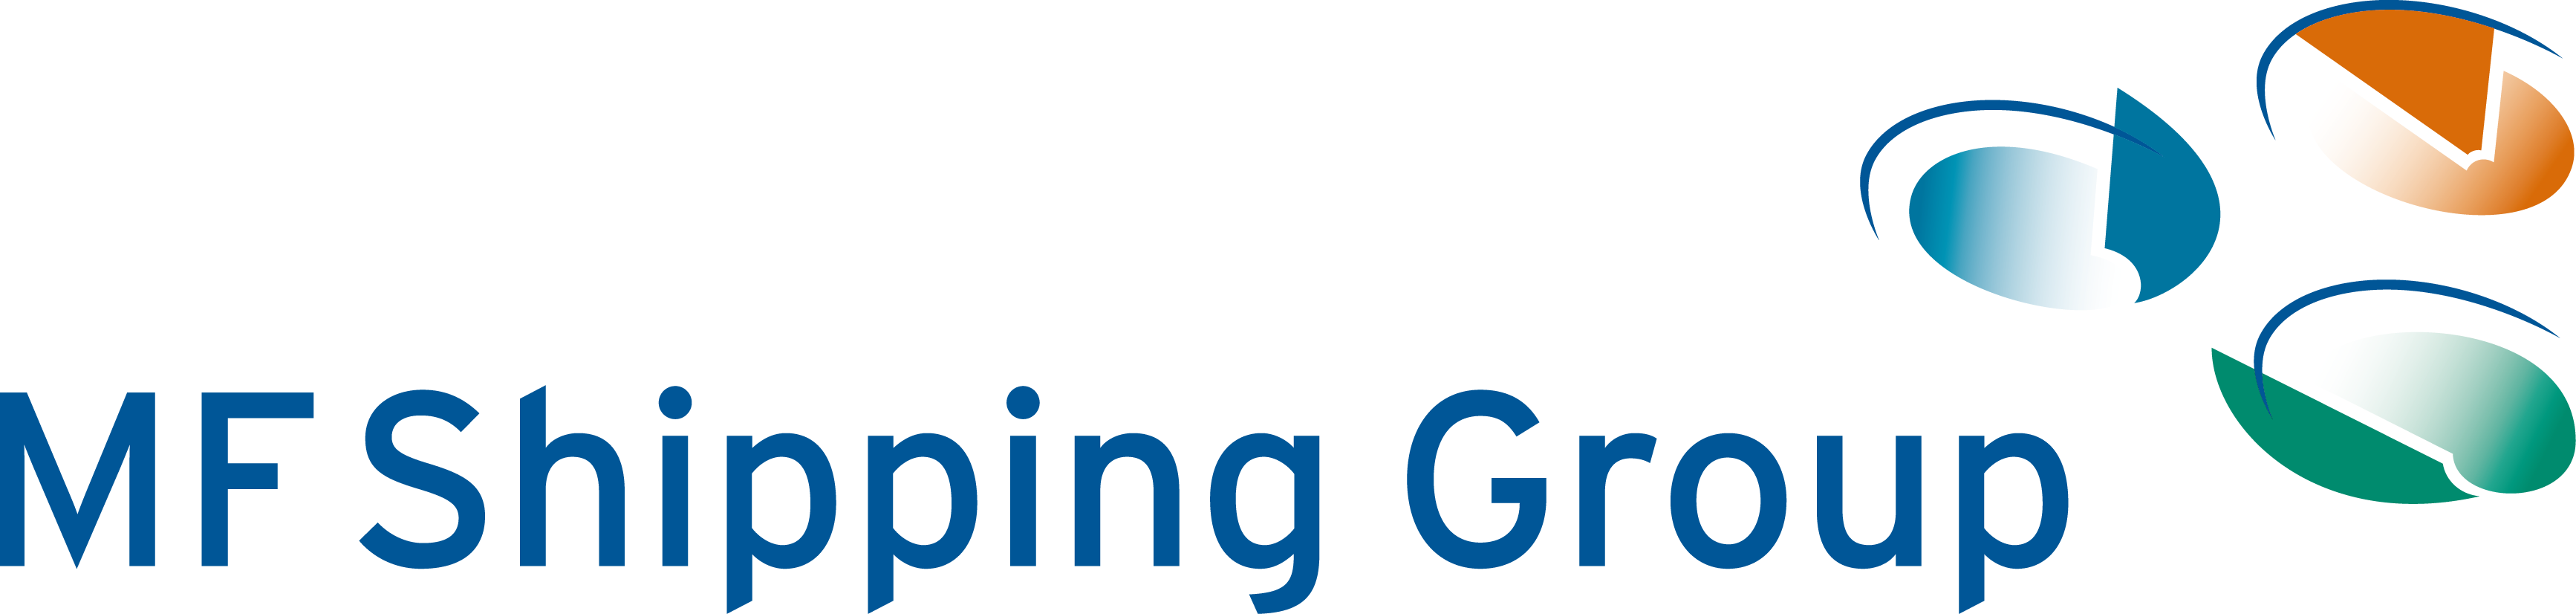 MF Shipping Group